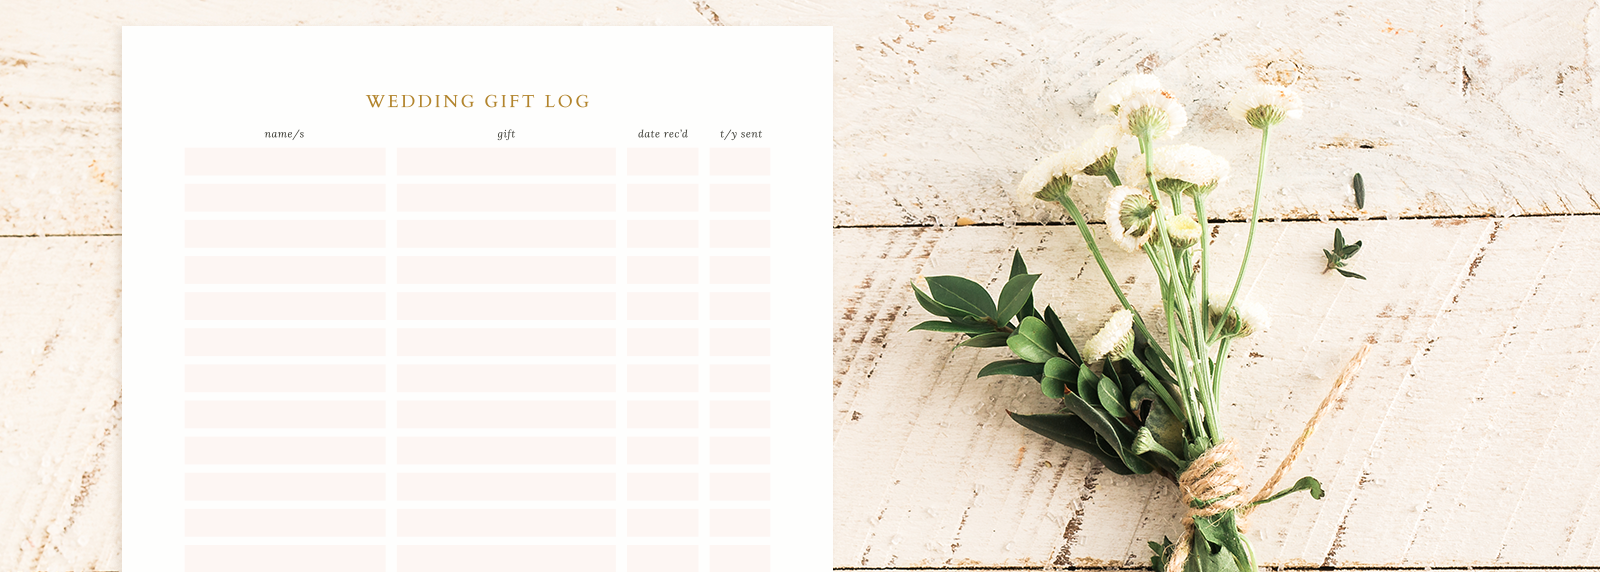 Free Printable Wedding Gift Log from Skipt Paper Co.